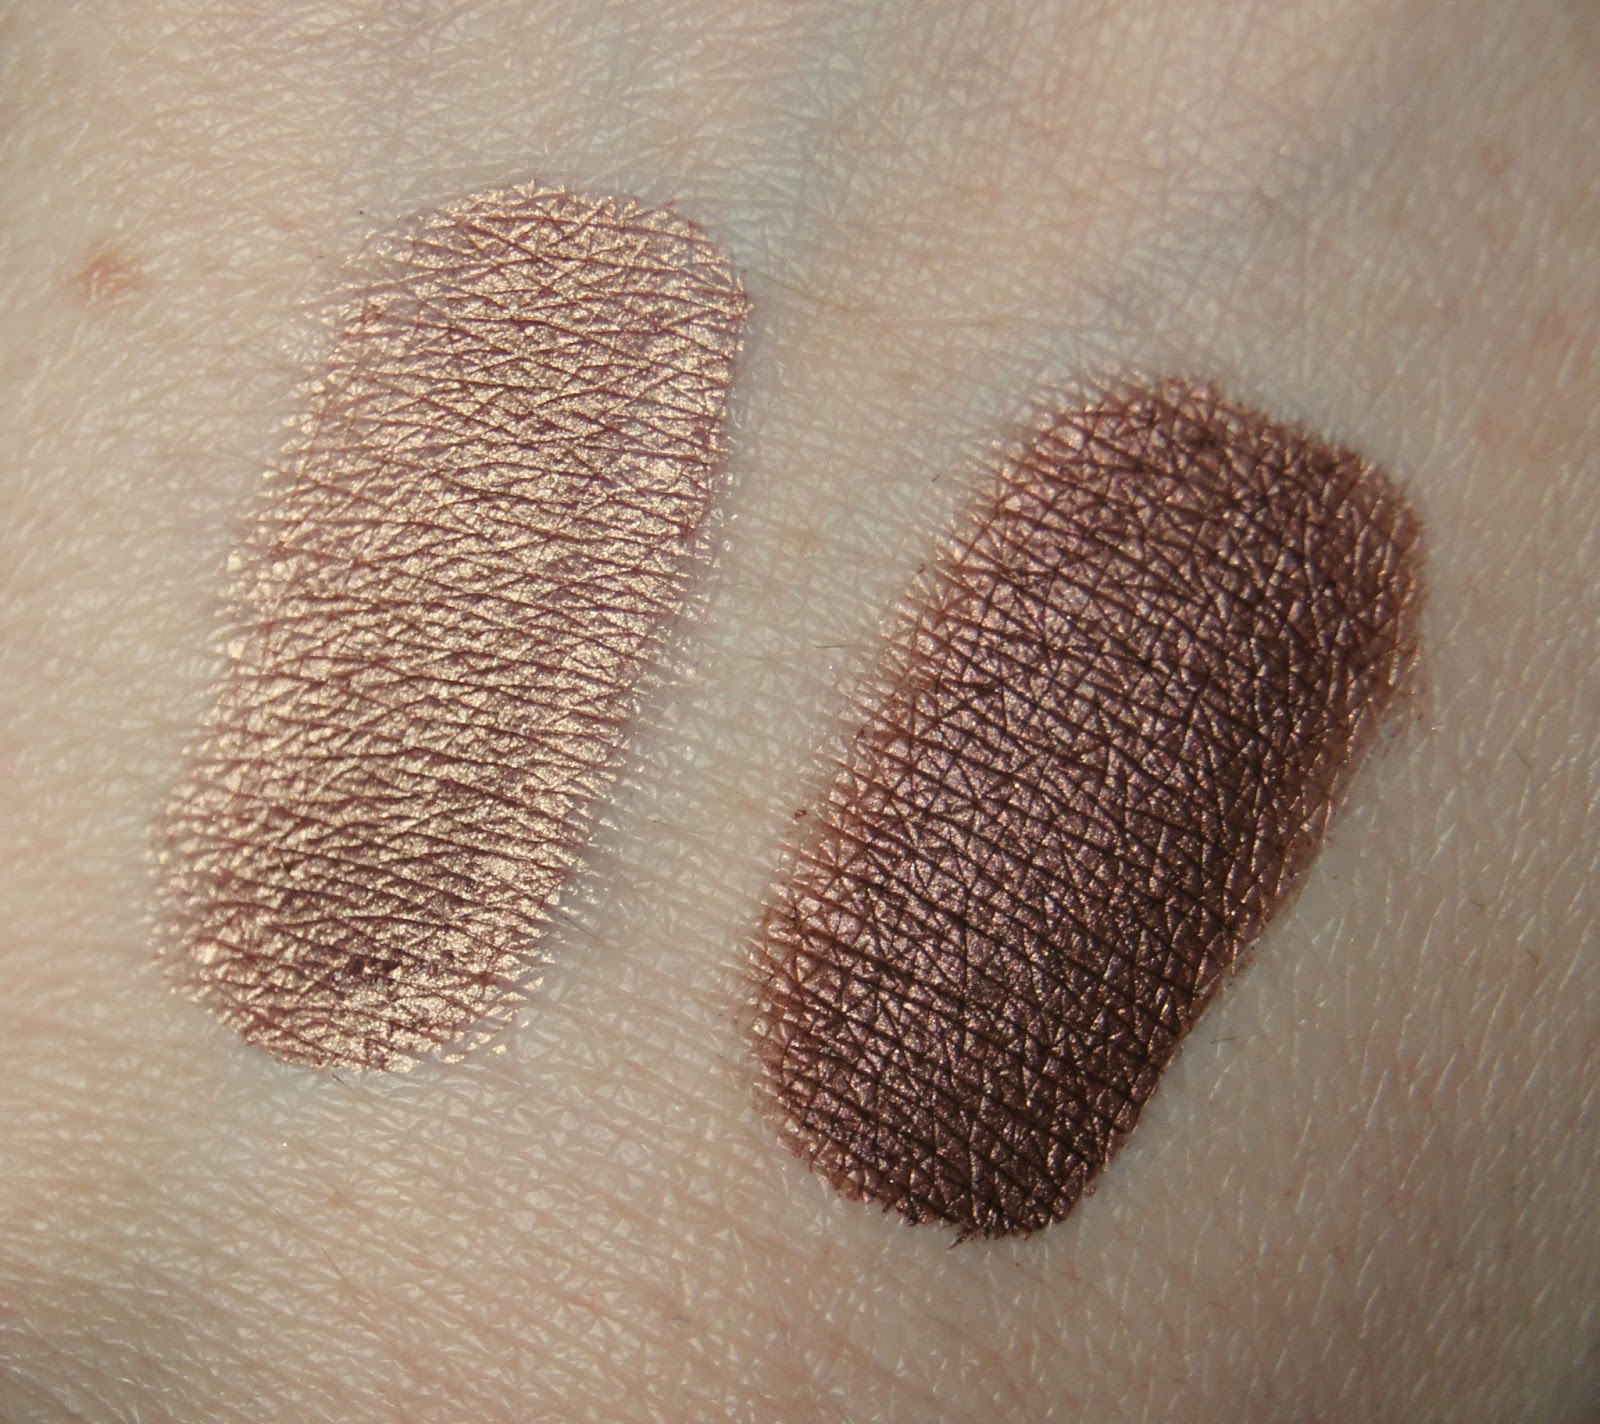 laura mercier metallic creme eye colour rose gold burnished copper swatches